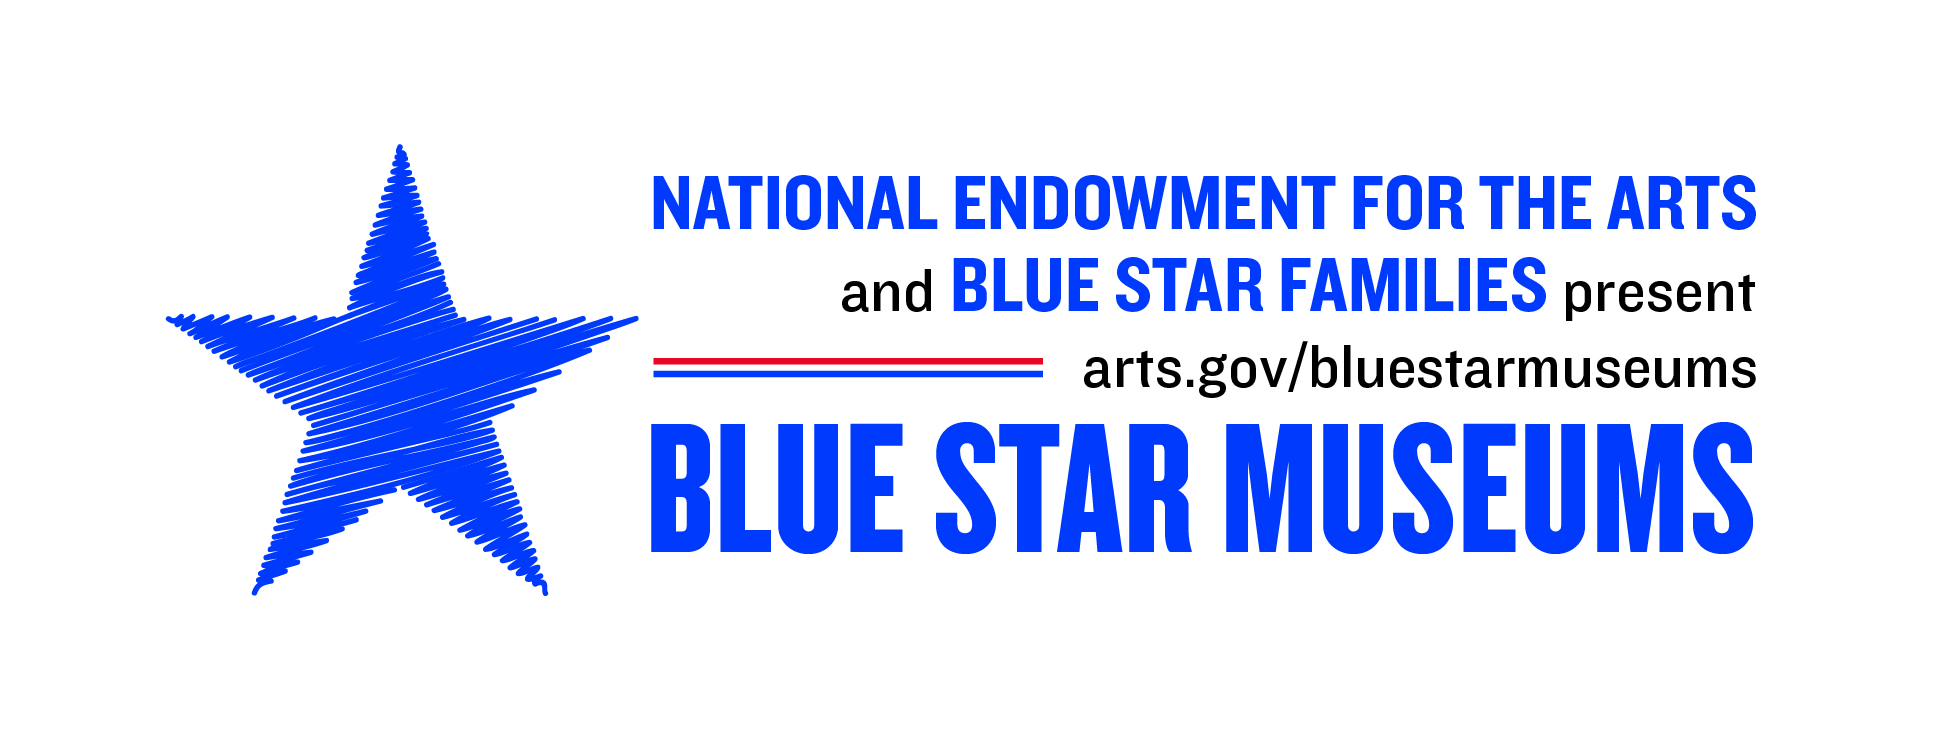 blue star museums - militay logo.jpg